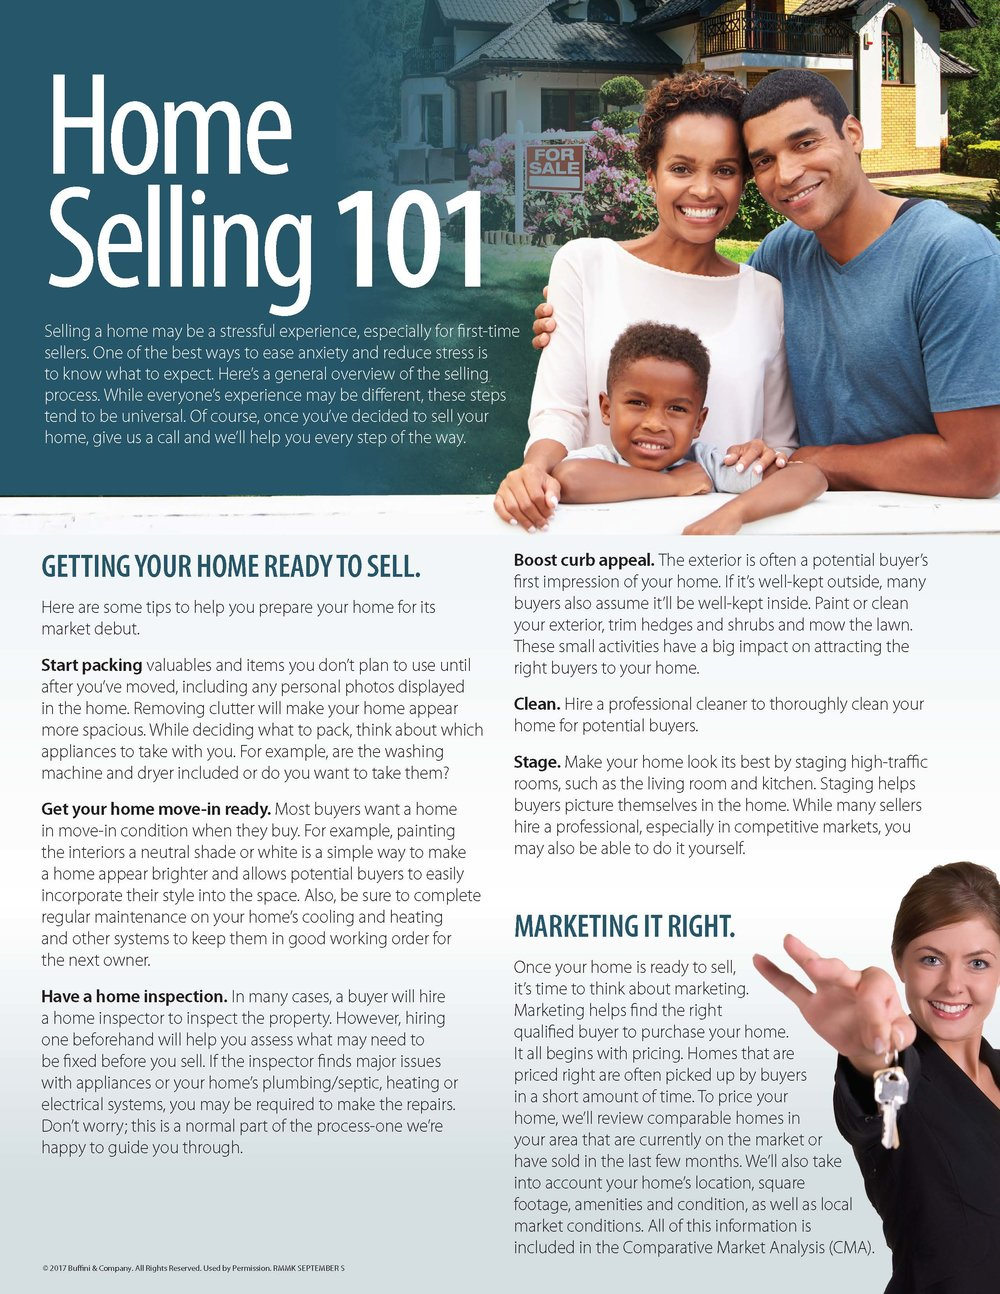 Home Selling 101_Page_1.jpg